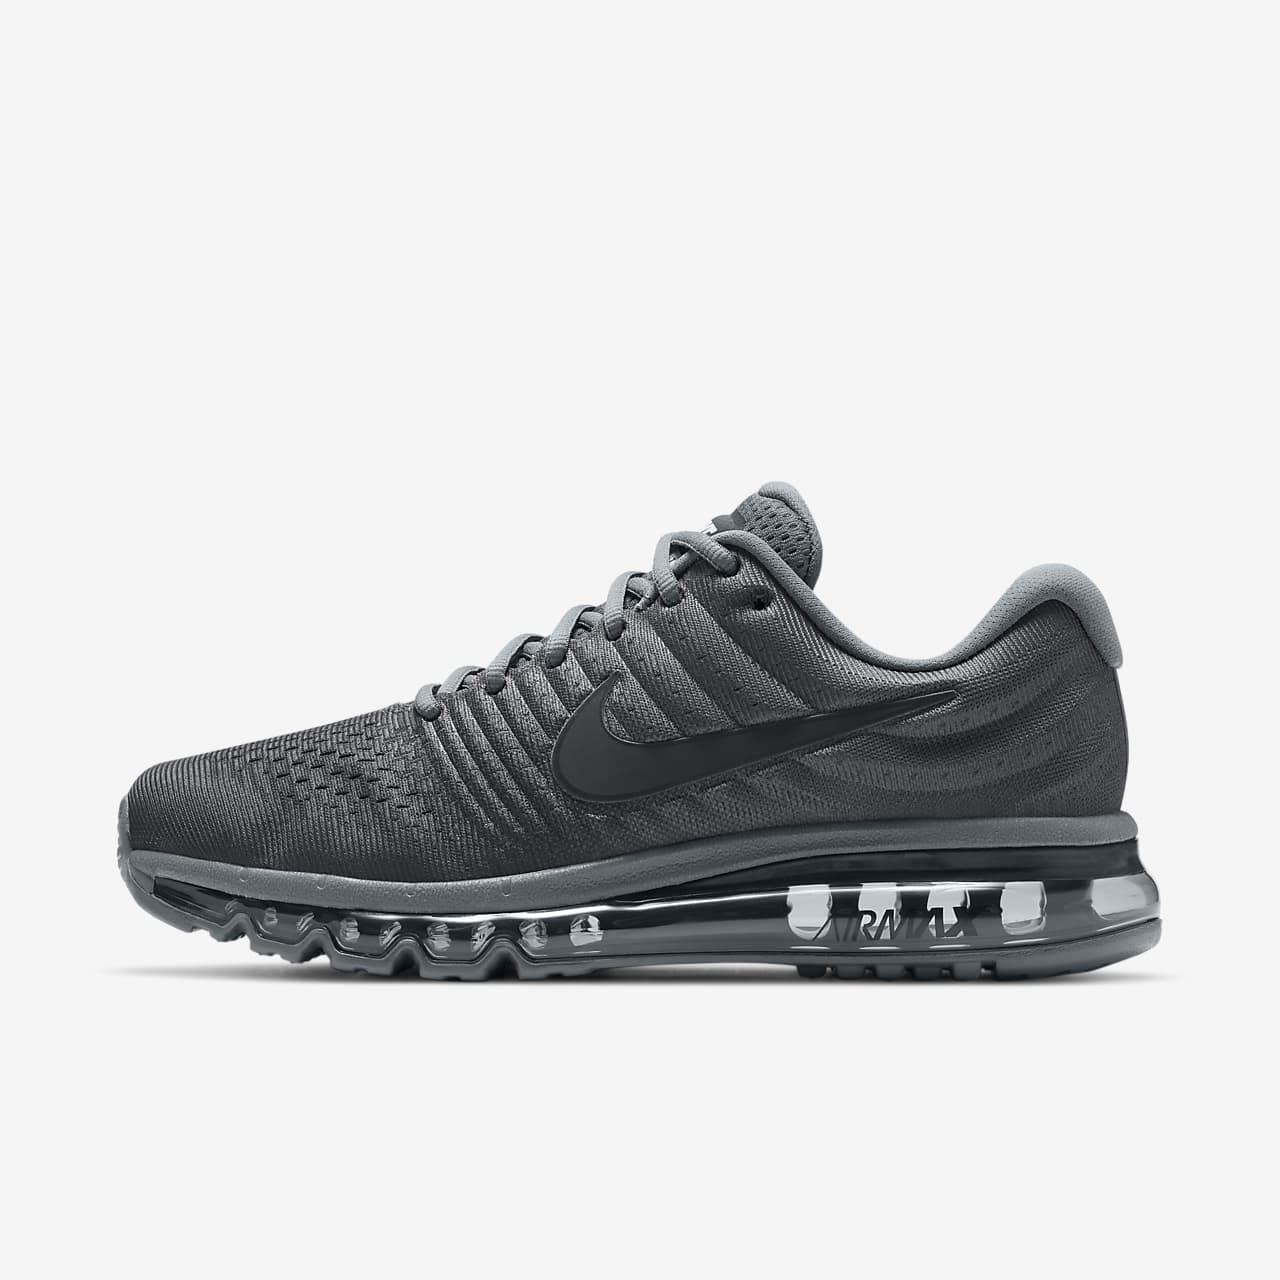 8a6c0ad574546 Nike Air Max 2017 Men s Shoe. Nike.com